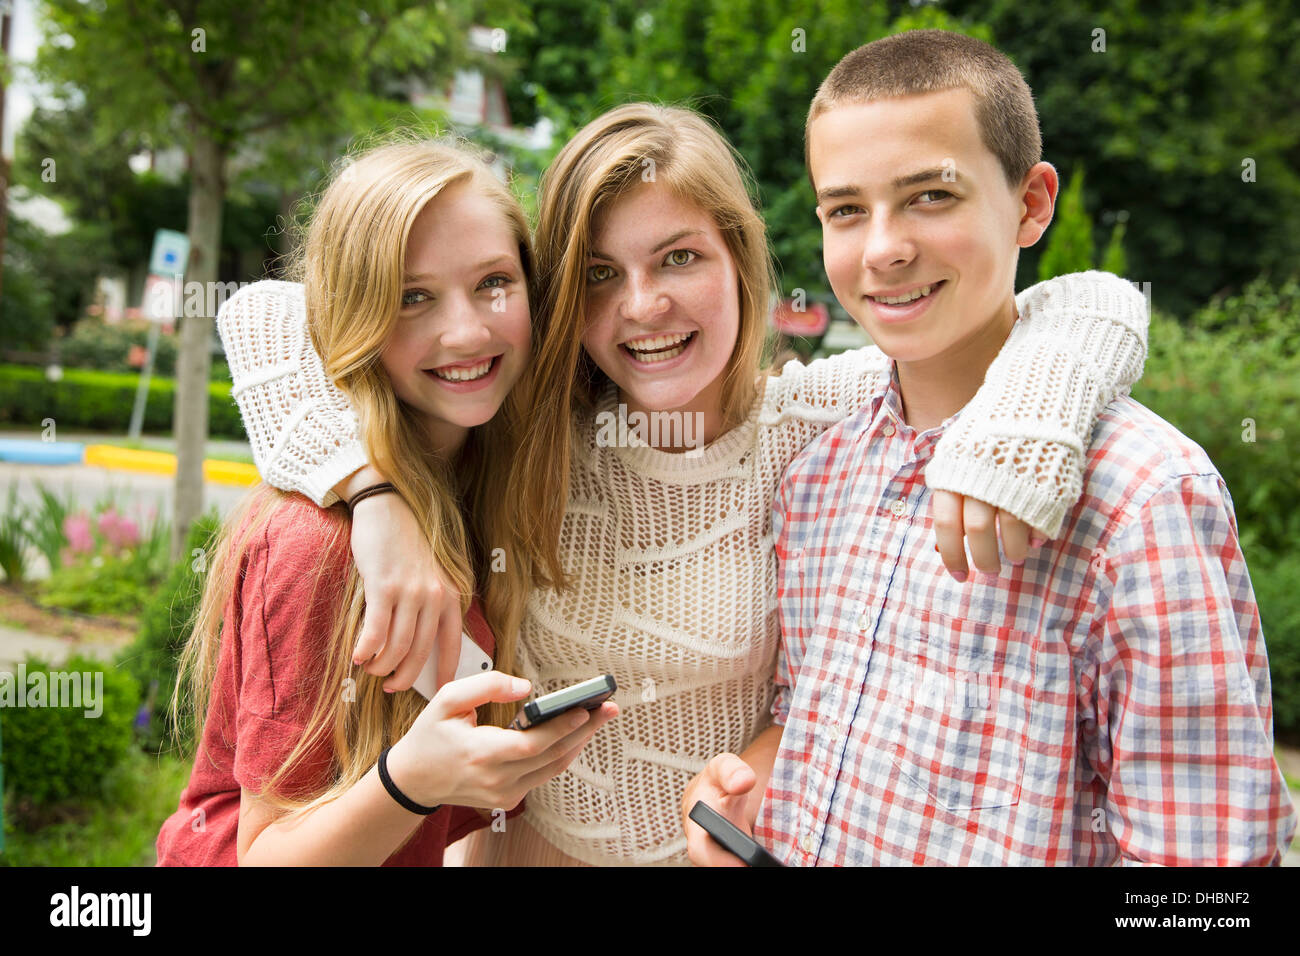 Three Young People, Two Girls And A Boy, Posing And Taking